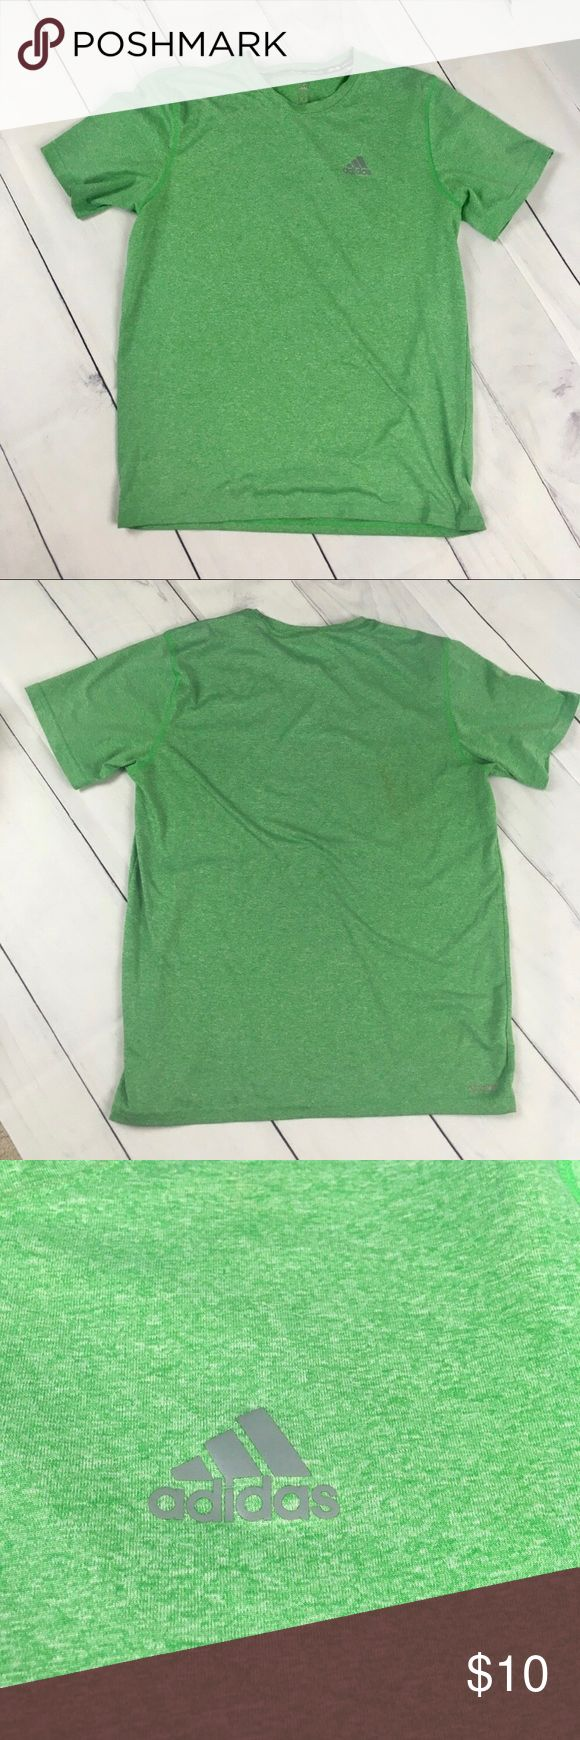 """Men's. Adidas. Green Climalite tee. Green. Med Adidas.  Men's medium athletic tee. Heather green. Very nice and comfortable. Climalite for wickining and keeping dry. Flattened seems for a nice feel on skin. In bright lights while taking photo i noticed a small mark on the back of the shirt as pictured. Hardly noticeable. Otherwise in great condition. Price reflects the minor flaw. Pit to Pit 19.5"""" Length 26""""  [A33] adidas Shirts Tees - Short Sleeve"""